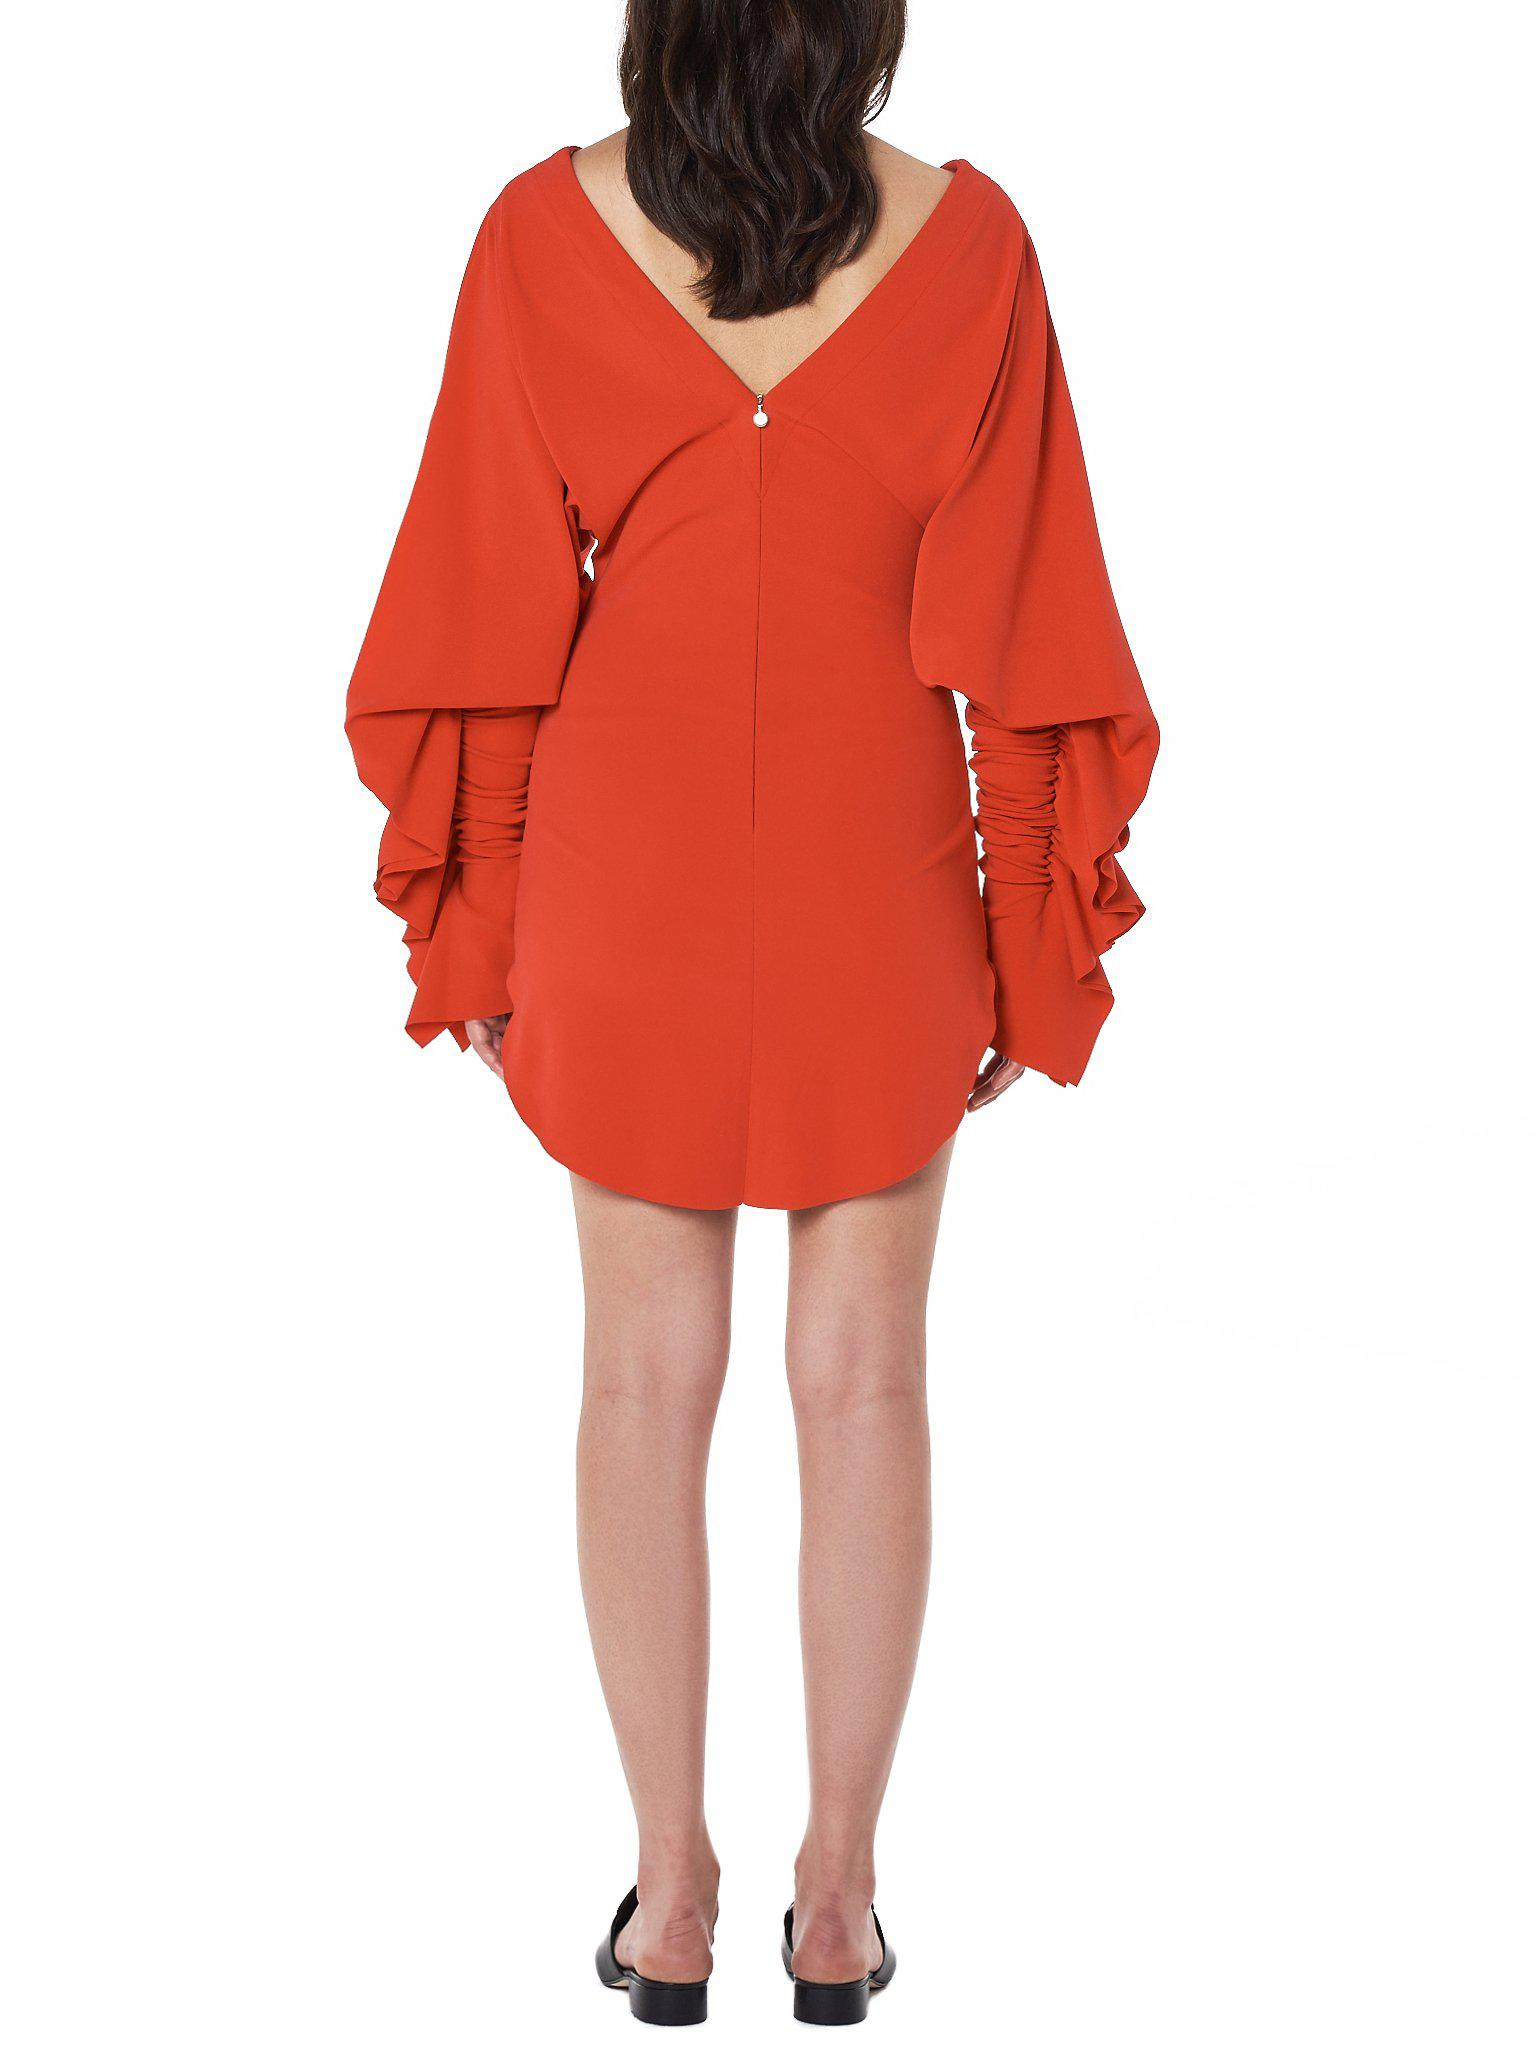 Lyst - Paula Knorr Ruched Sleeve Dress in Red 49c30be62